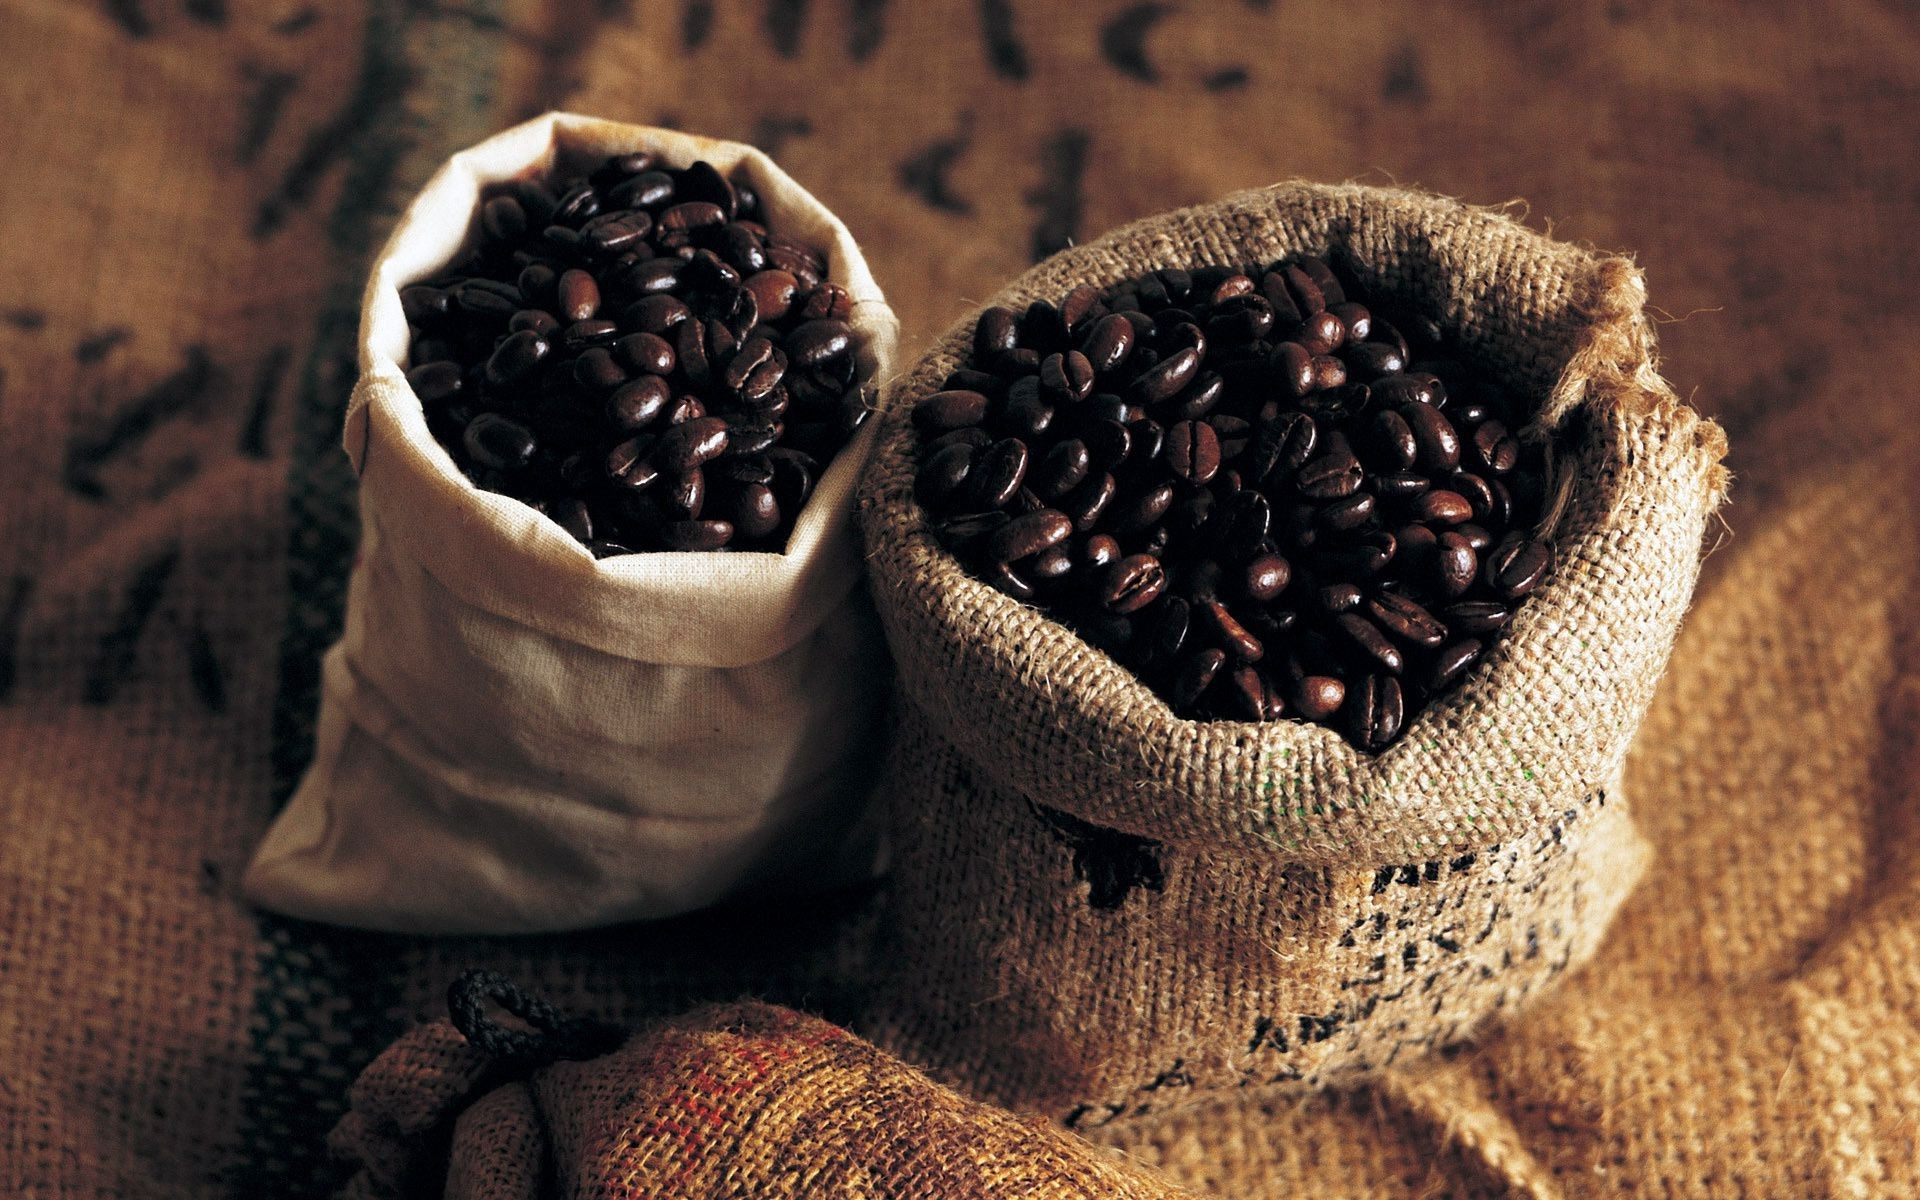 coffee food drink dark cereal wood burlap still life dawn bean agriculture close-up rustic wooden caffeine cup perfume spoon seed